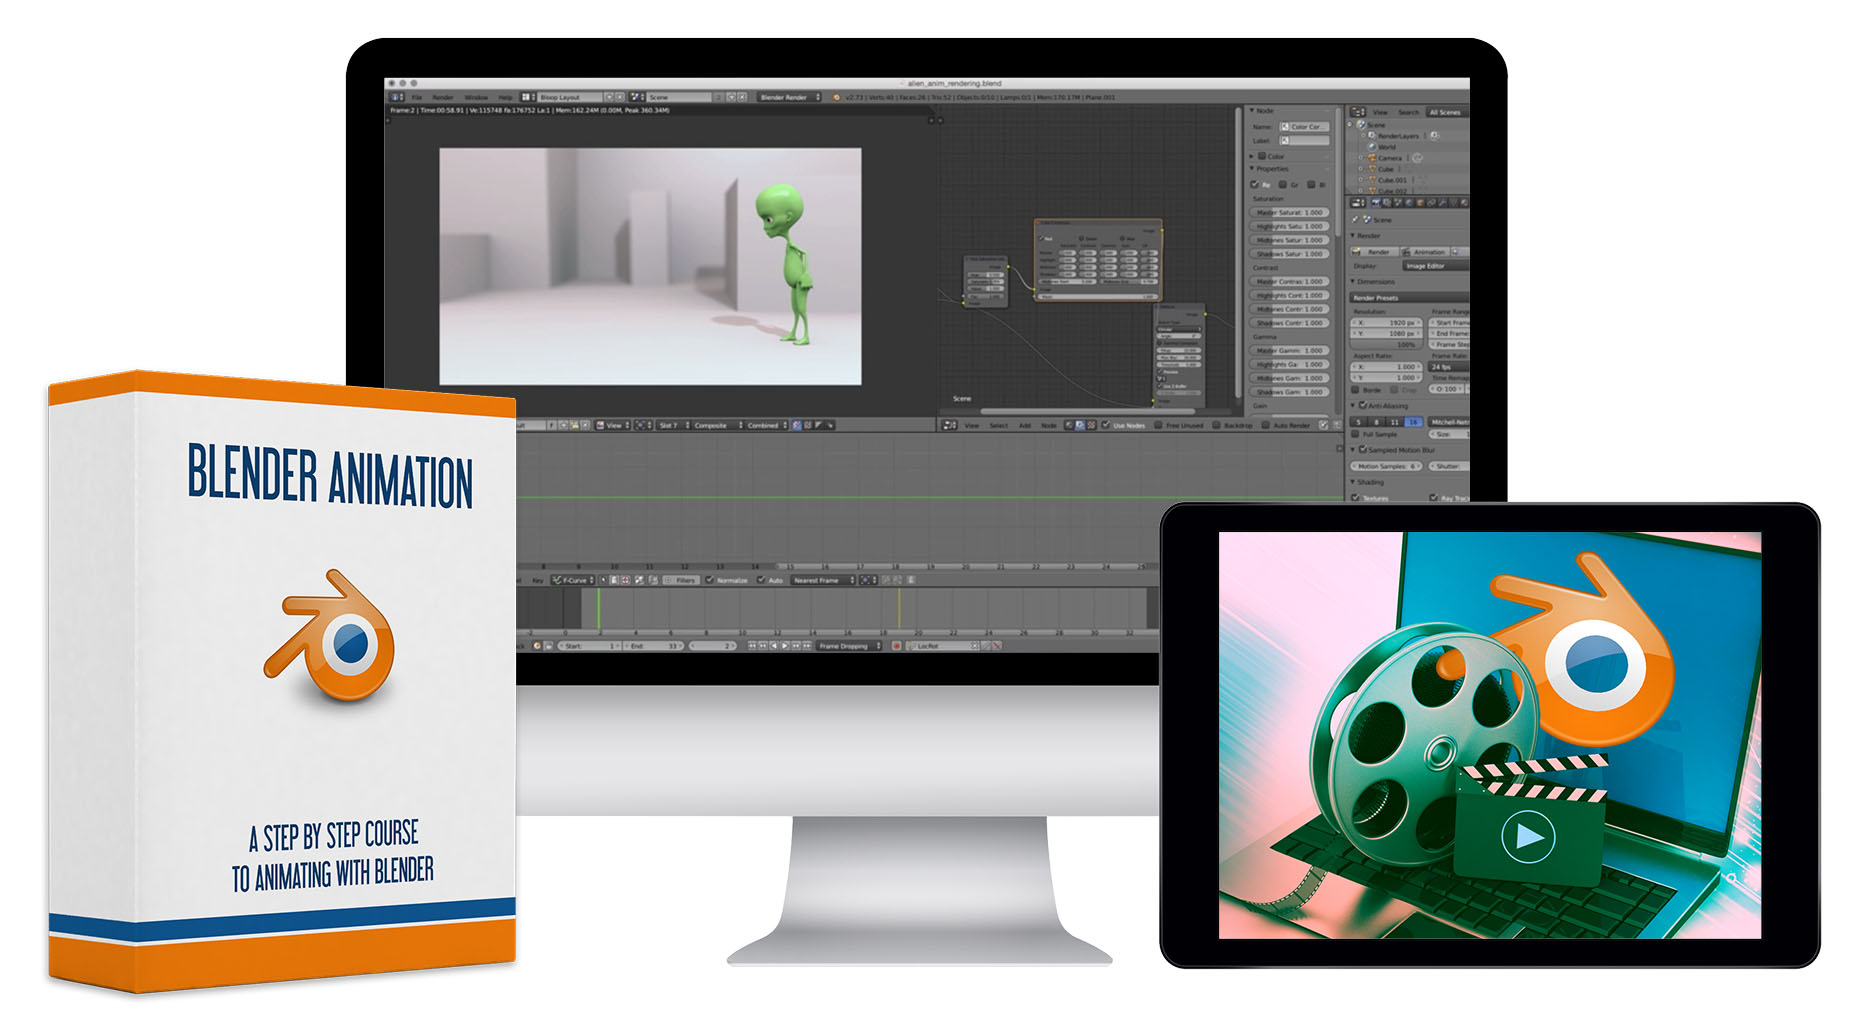 learn 3d modelling - the complete blender creator course دانلود